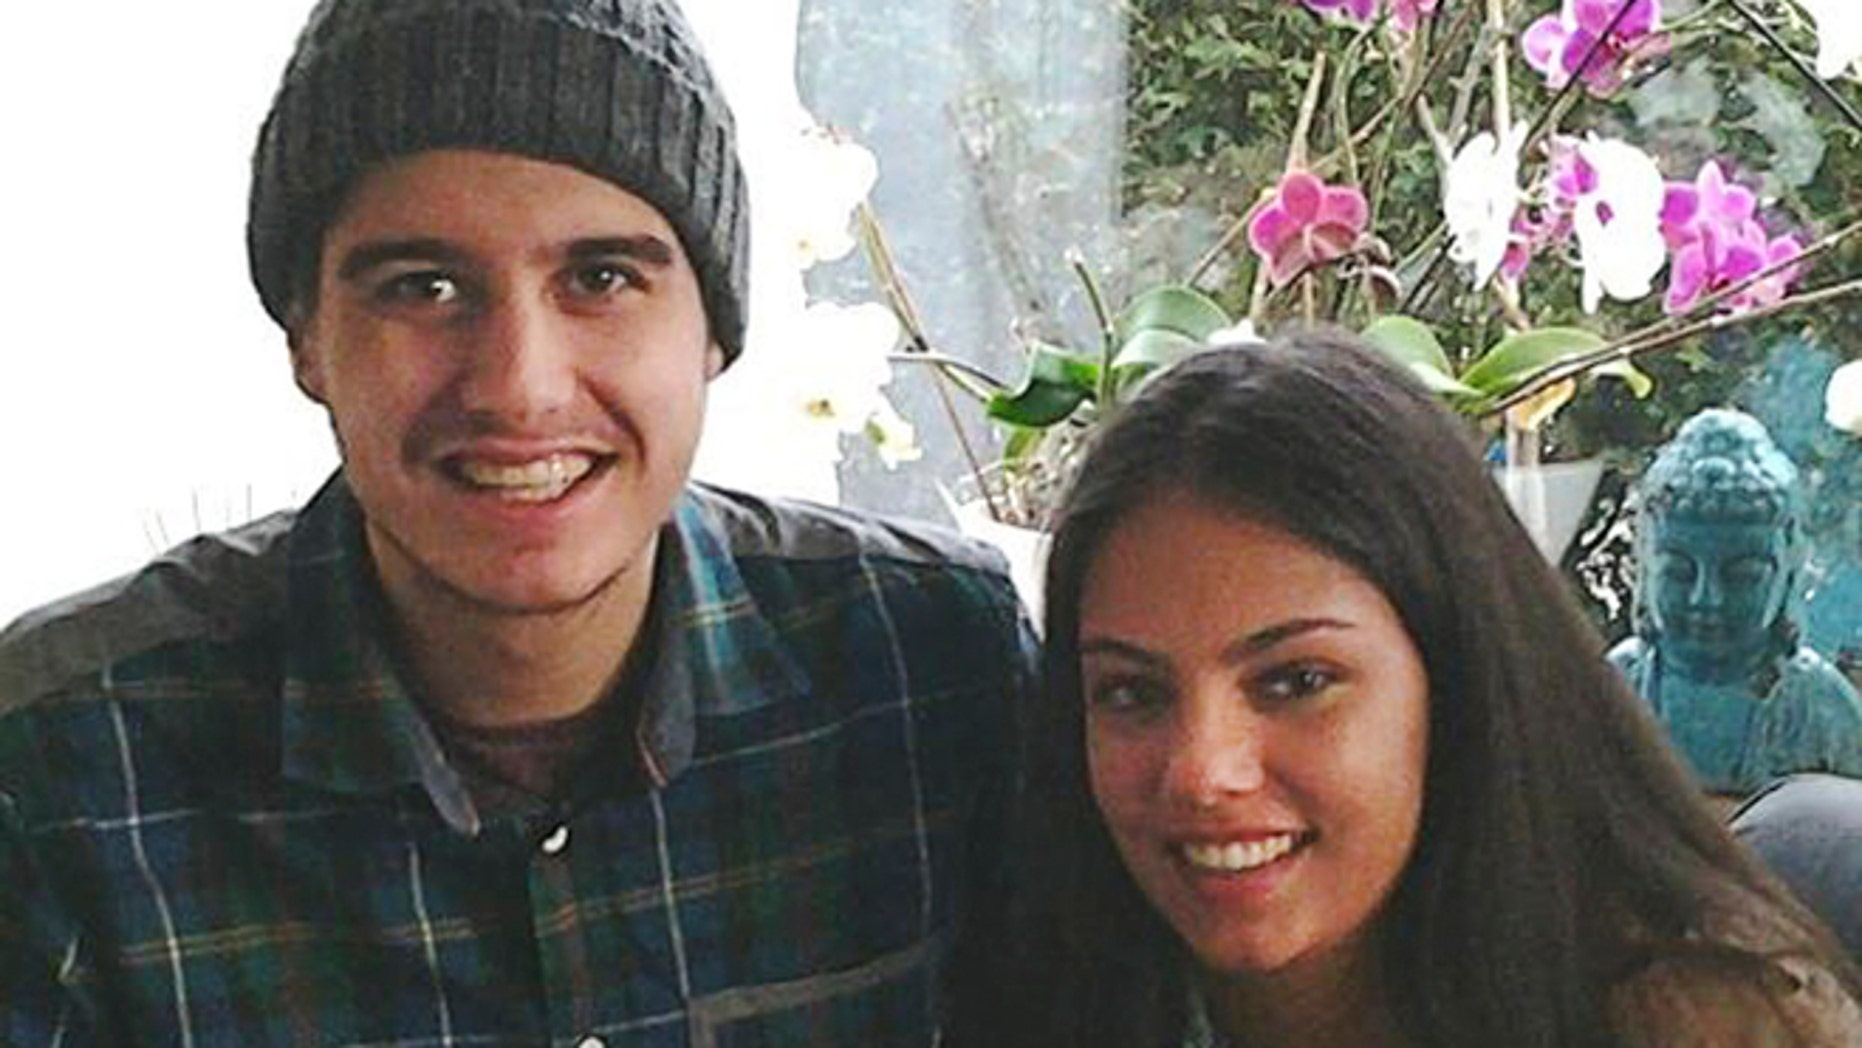 July 20, 2014: This undated photo provided by Silene Fredriksz-Hoogzand shows Bryce Fredriksz, left, and his girlfriend Daisy Oehlers. Fredriksz-Hoogzand, whose son Bryce and his girlfriend Daisy Oehlers were killed when a Malaysian jetliner was shot down over Ukraine on Thursday, said she was appalled their bodies and those of other victims had been left lying for days.